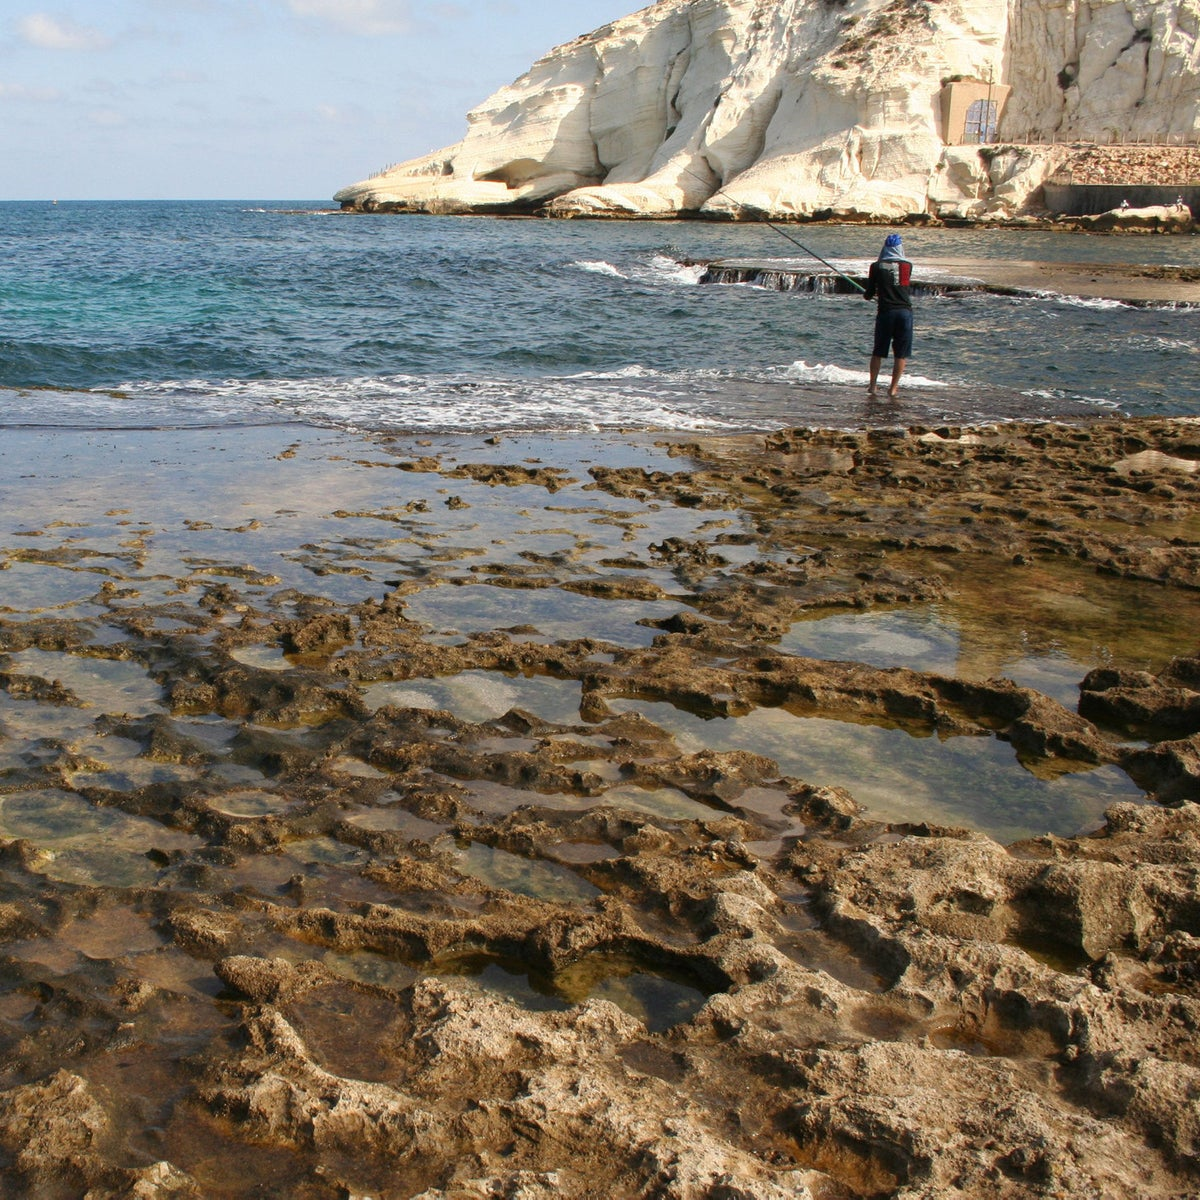 Israel has gorgeous coastal areas...such as this one at Rosh Hanikra, but in summer, one has issues of crowding swimmers into tiny areas, and our friend the jellyfish